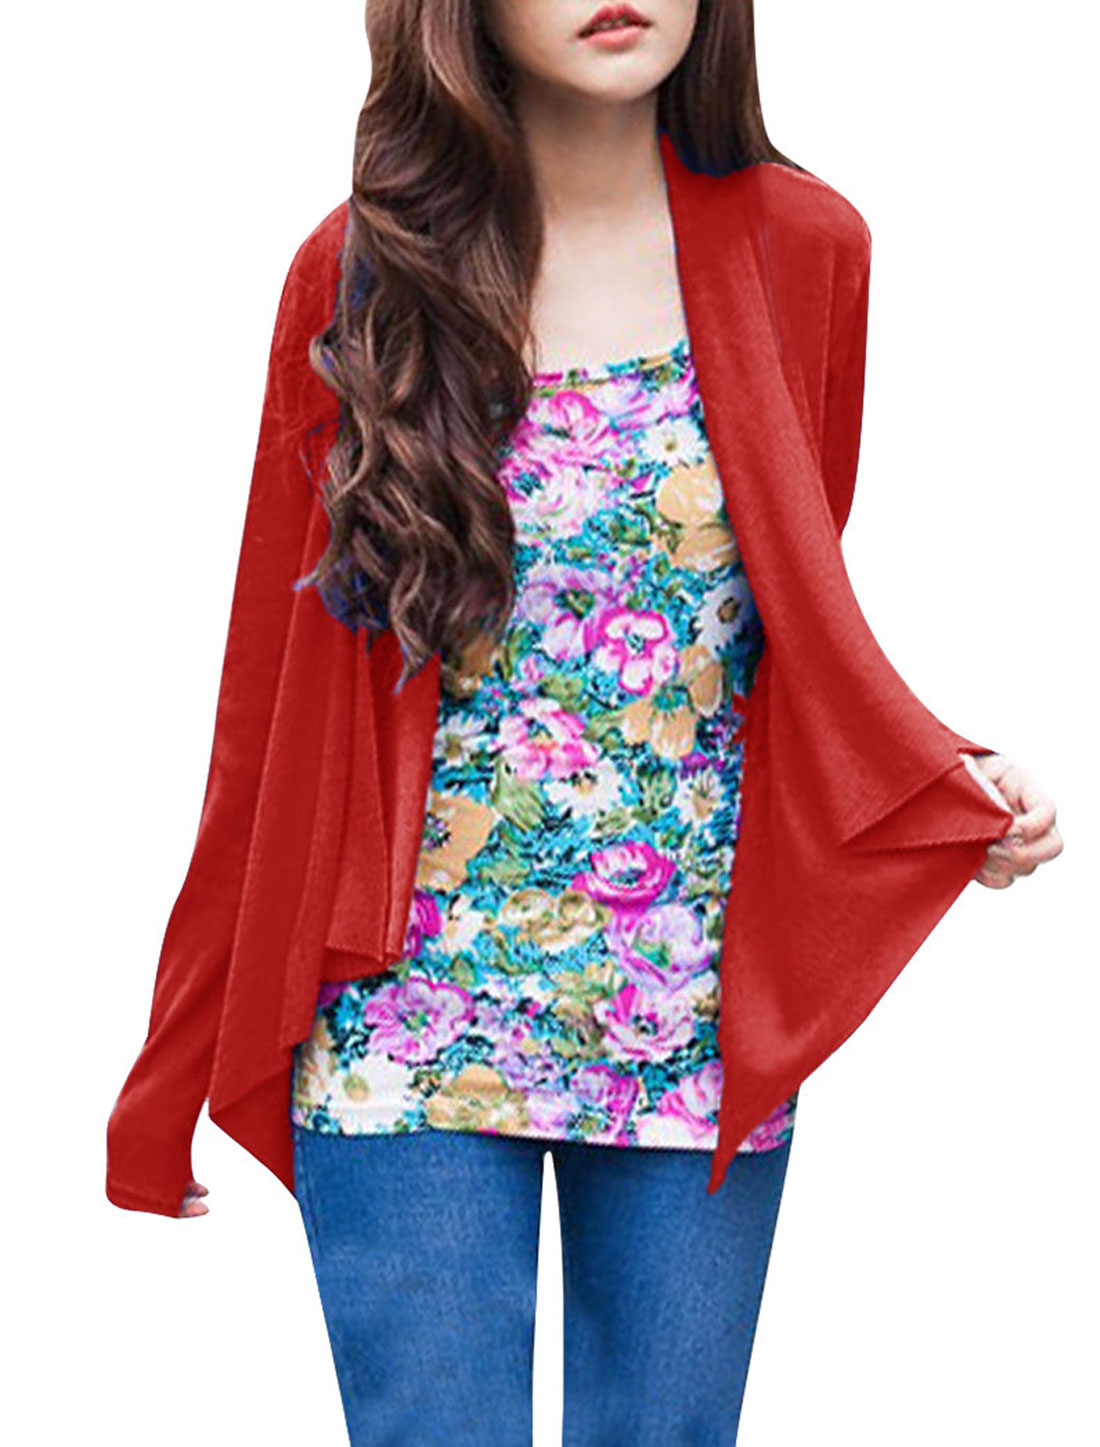 Lady Chic Red Color Front Opening Draped Design Casual Spring Cardigan XS